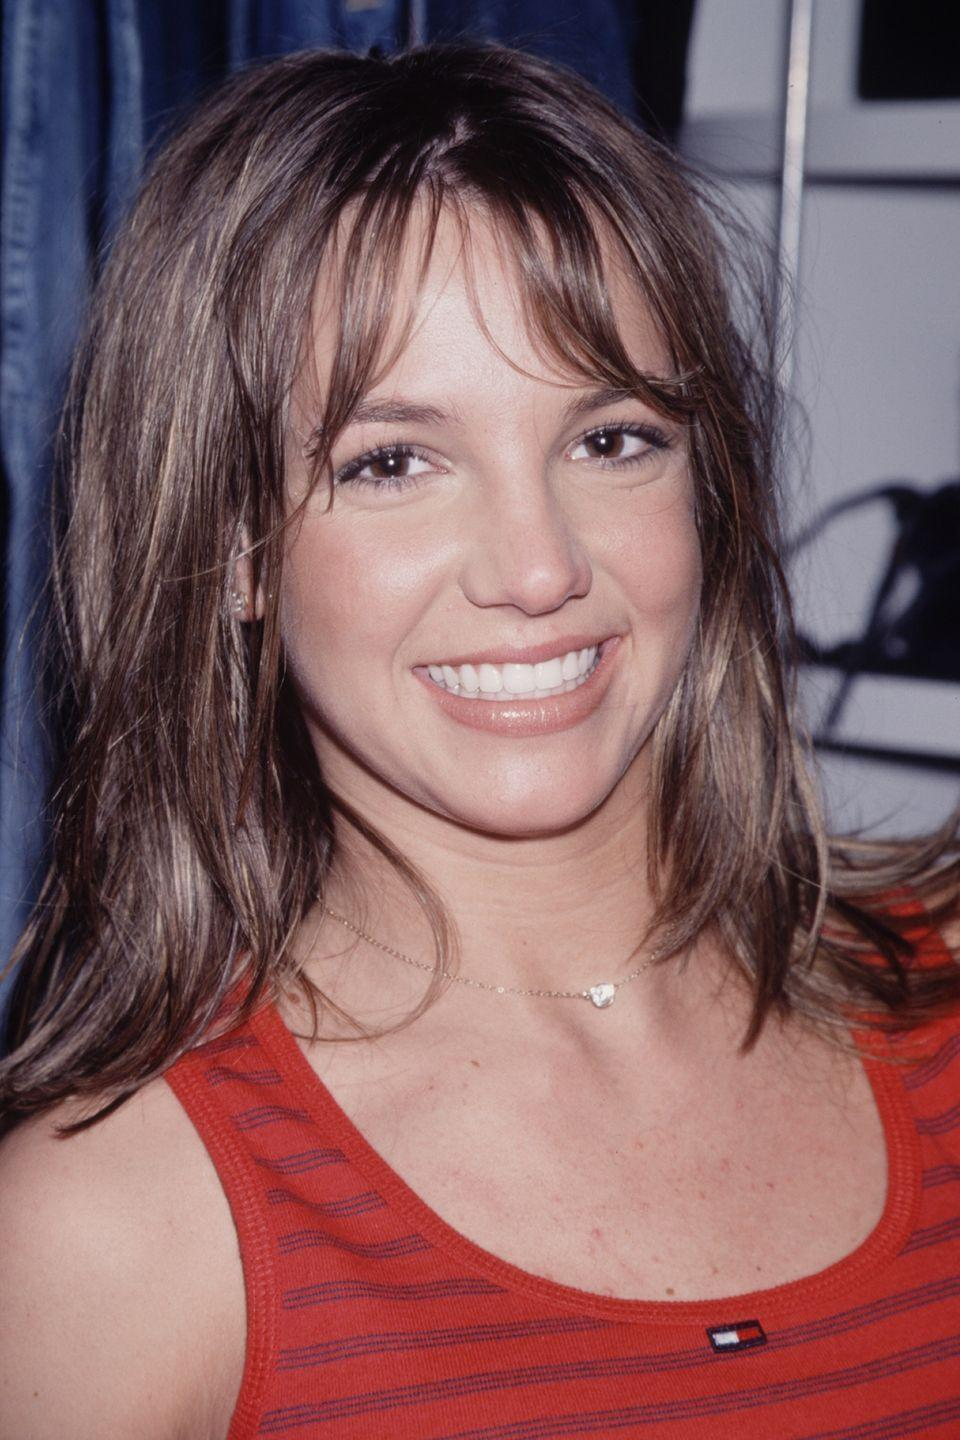 <p>Anyone who remembers her <em>Mickey Mouse Club</em> days knows Britney's hair matched her pretty brown eyes.</p>